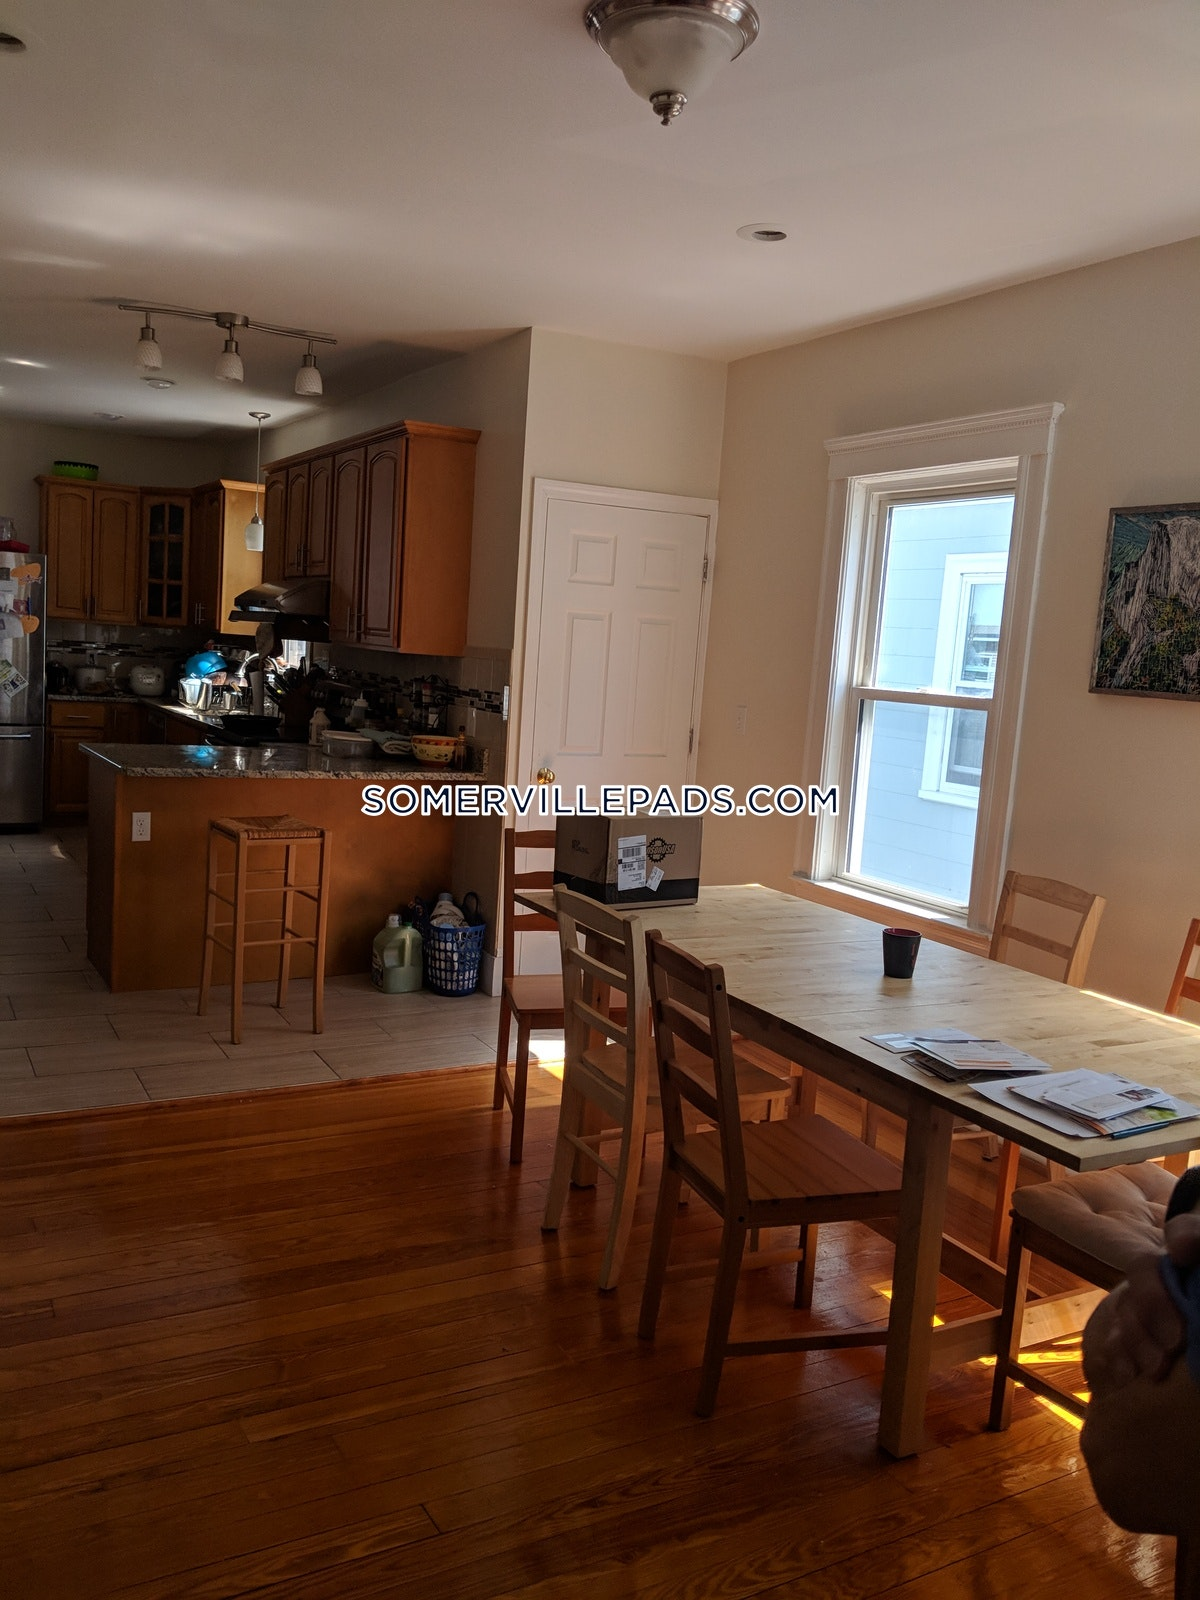 5-beds-2-baths-somerville-tufts-5500-445744